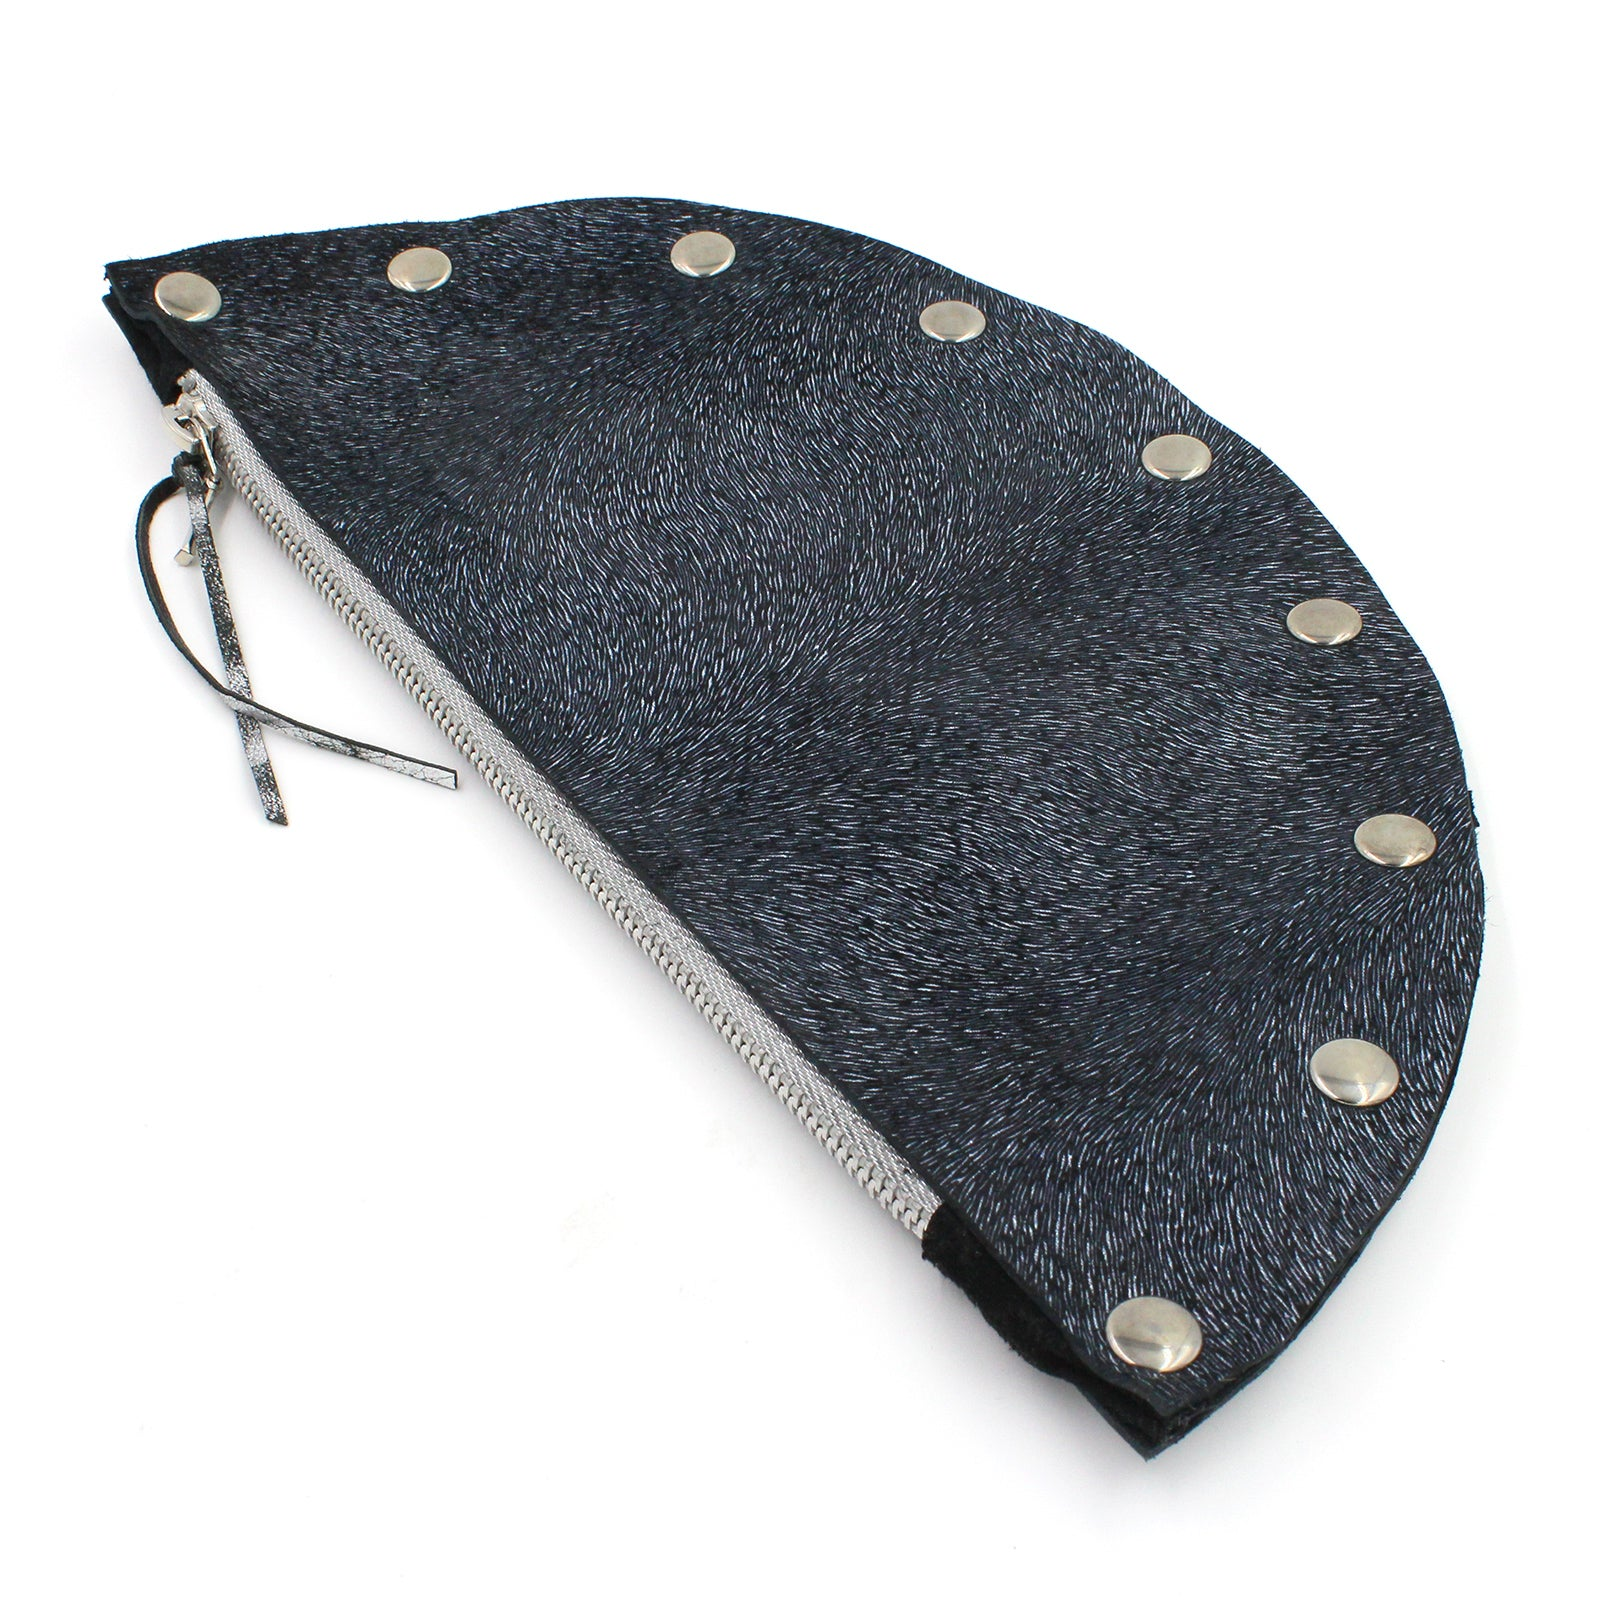 Handmade Navy Blue Half Moon Leather Clutch